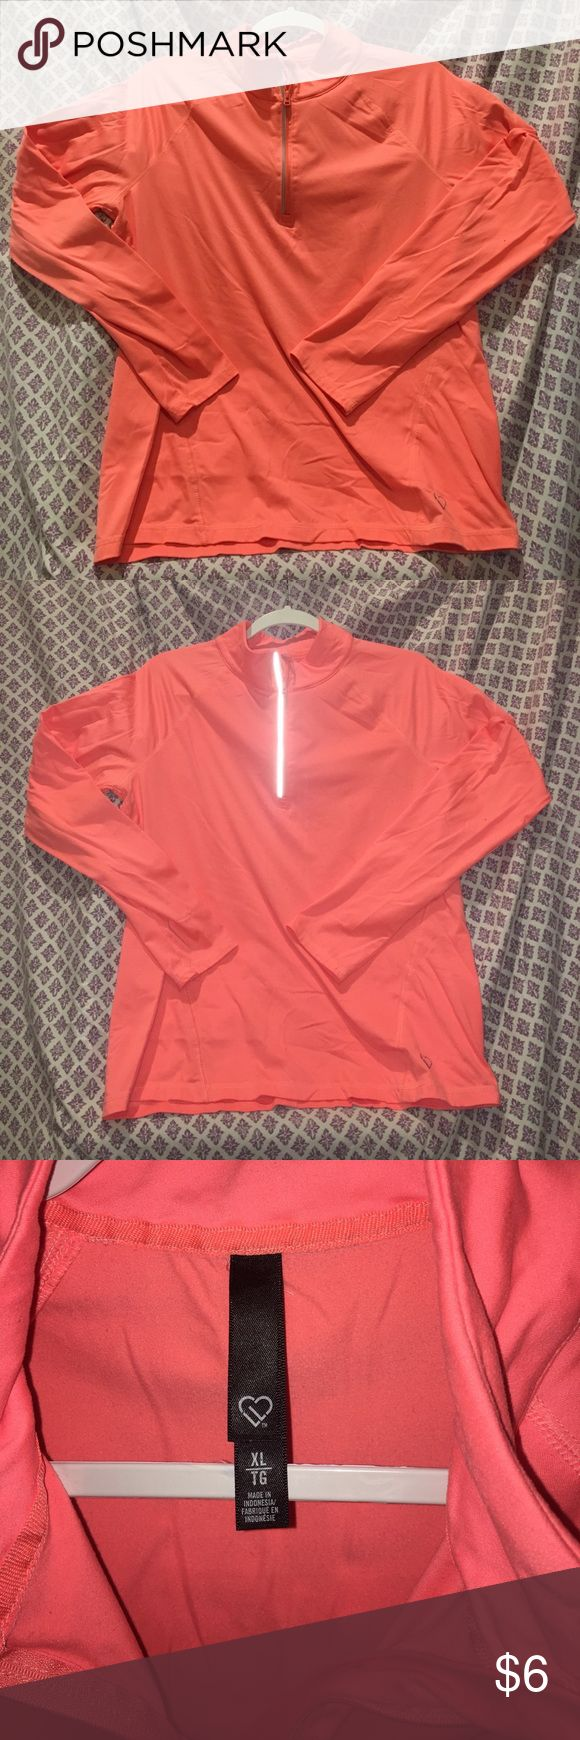 Peach workout top Quarter zip peach workout top. Zipper features reflexive strip for visibility when out at night. Great for layering under t-shirts or over workout tanks Aeropostale Tops Sweatshirts & Hoodies